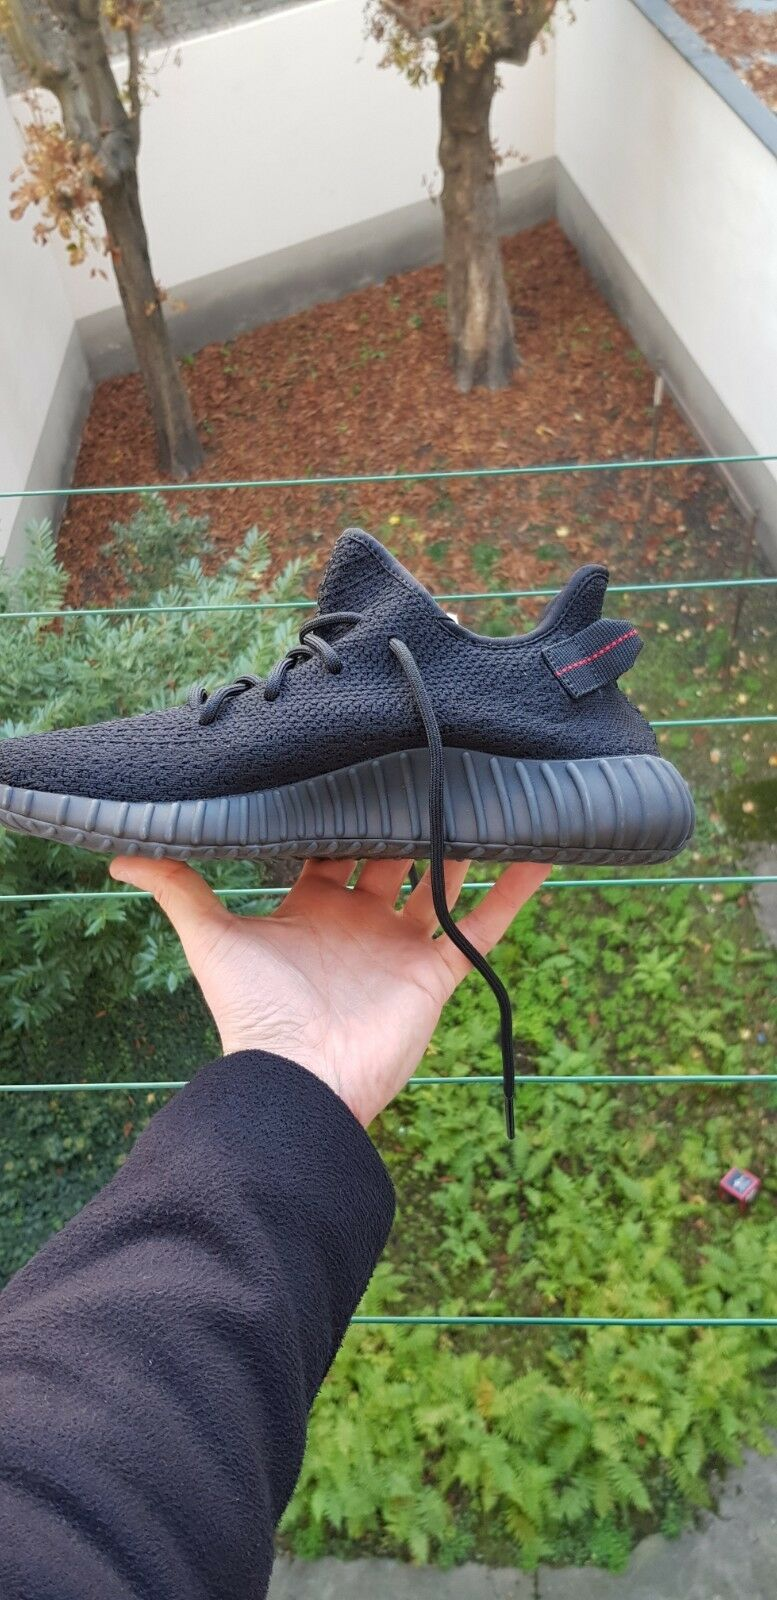 finest selection f400f dc347 NIKE AIR VAPORMAX 95 chaussures hommes sport loisir Basket basket AJ7292-002,.  Adidas Yeezy Boost 350 V2 BRouge taille 43 1 3 9e32e0 Adidas Yeezy Boost  350 ...